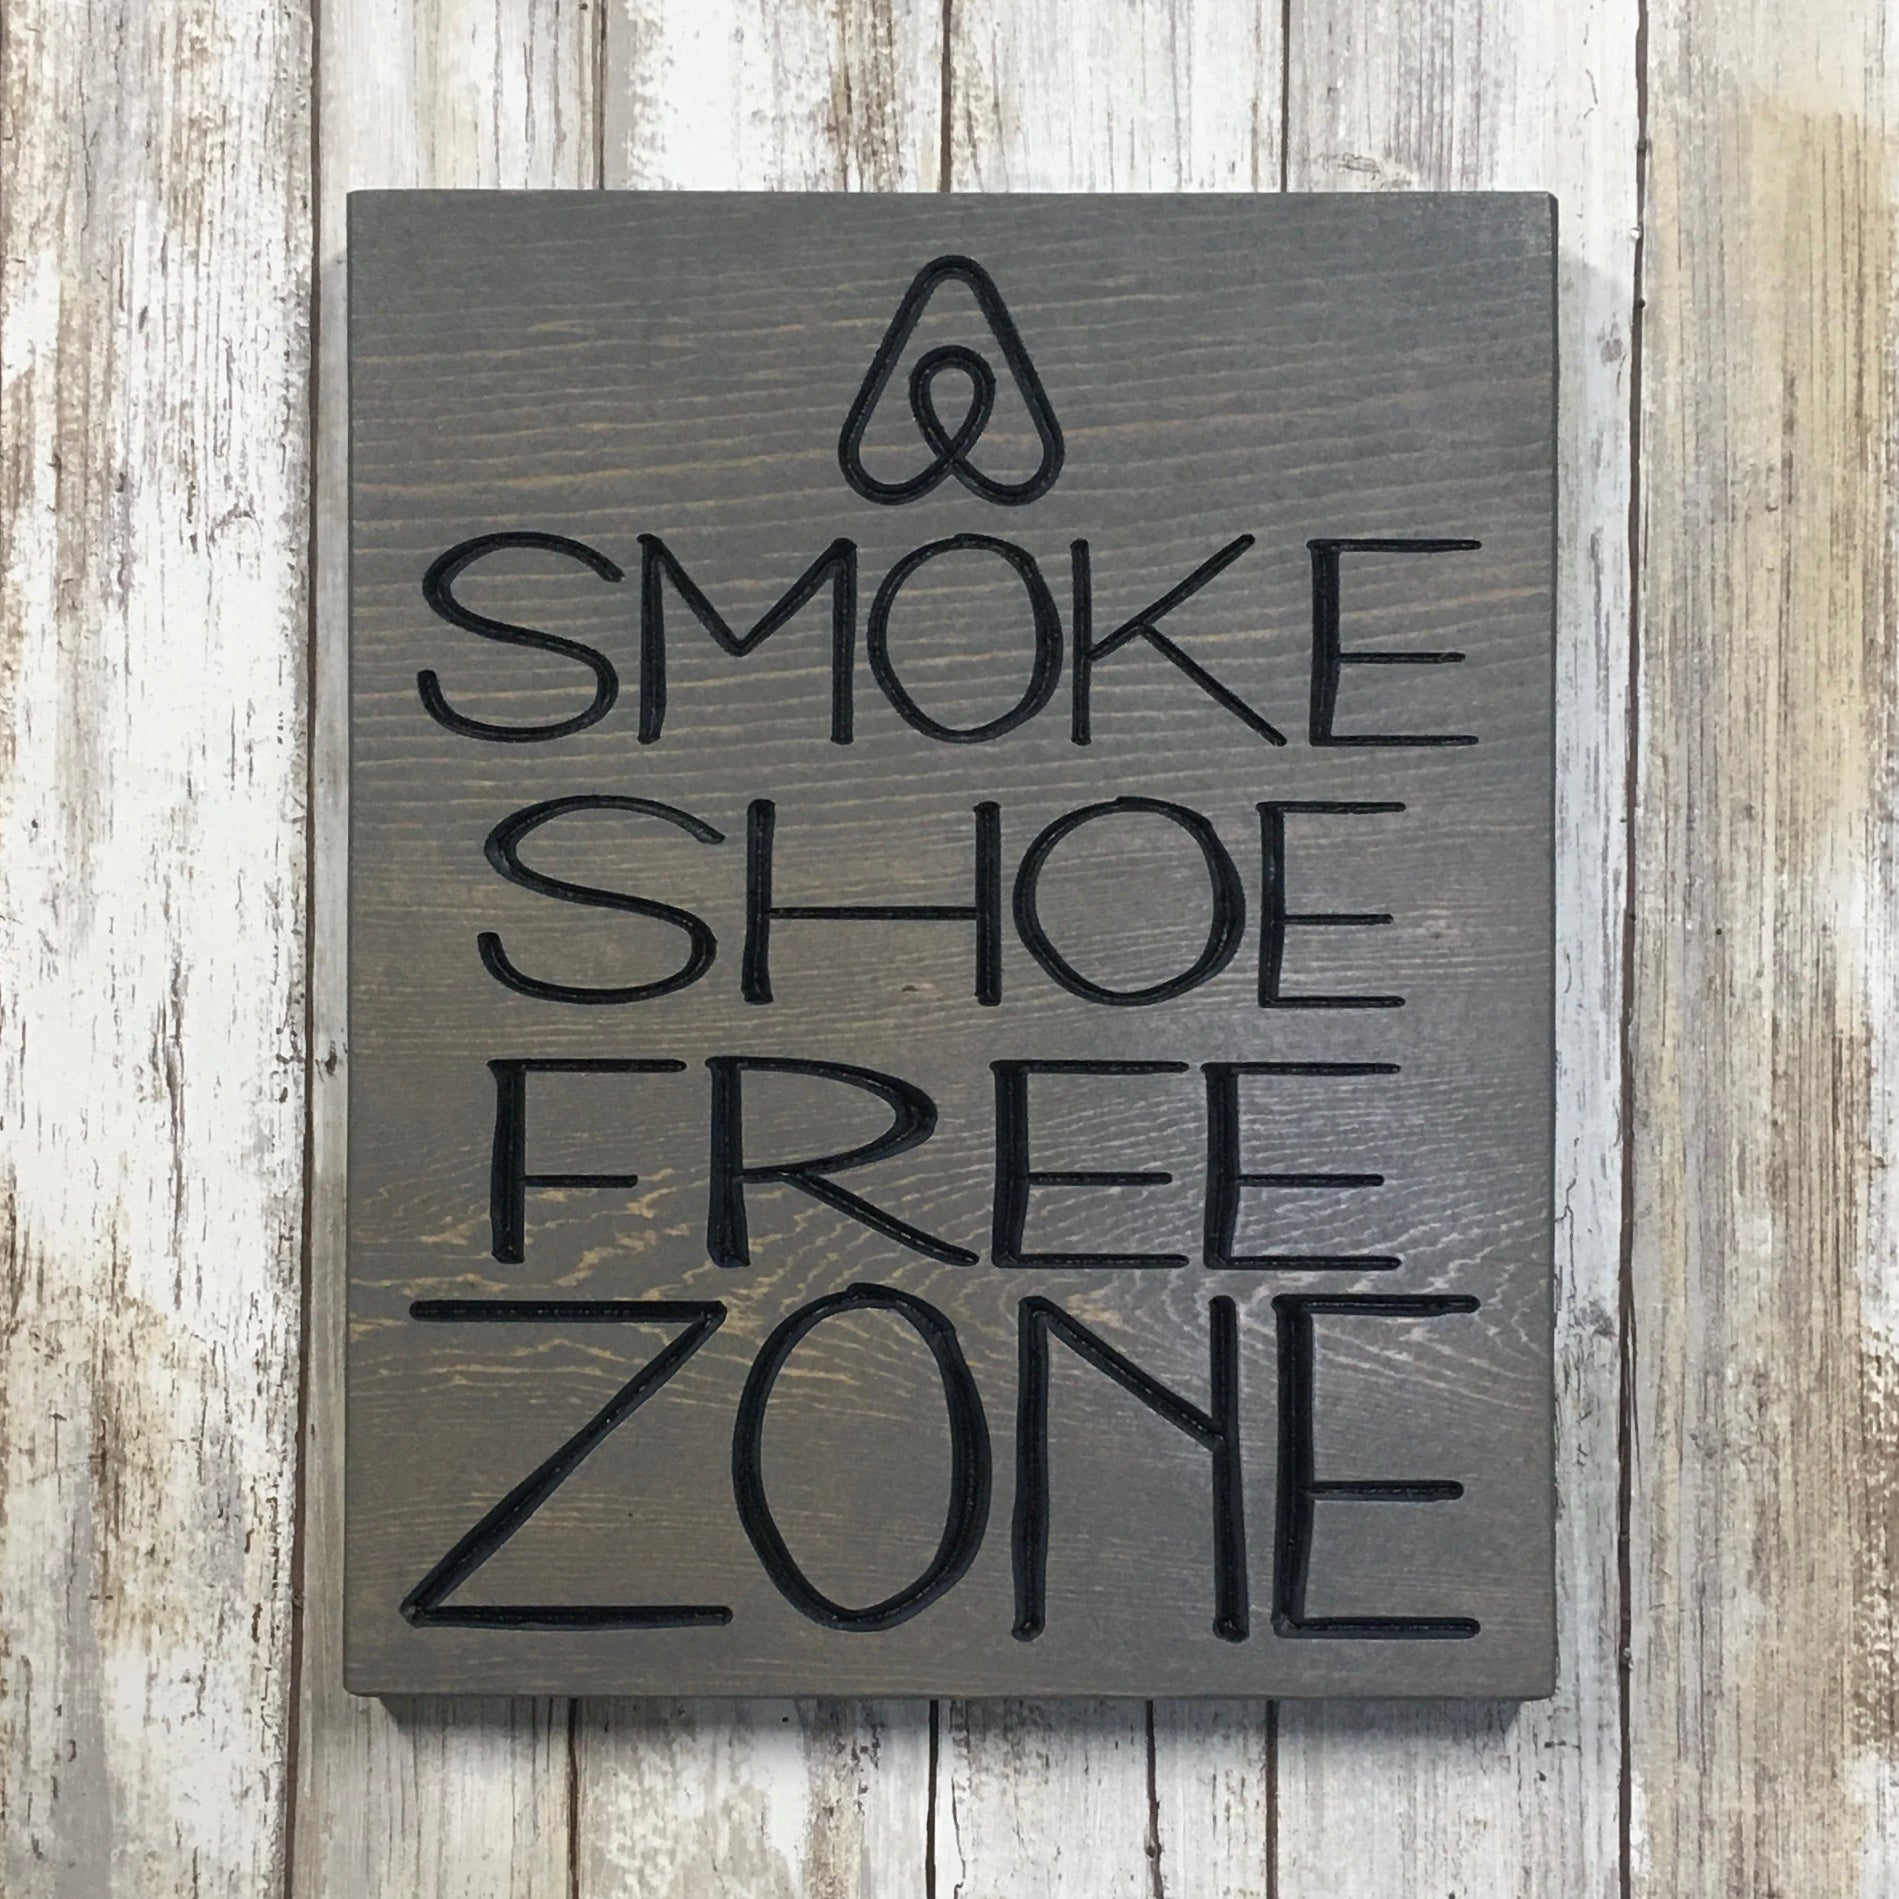 Custom Airbnb No Smoking or Shoe Zone Plaque Signs - Carved Pine Wood